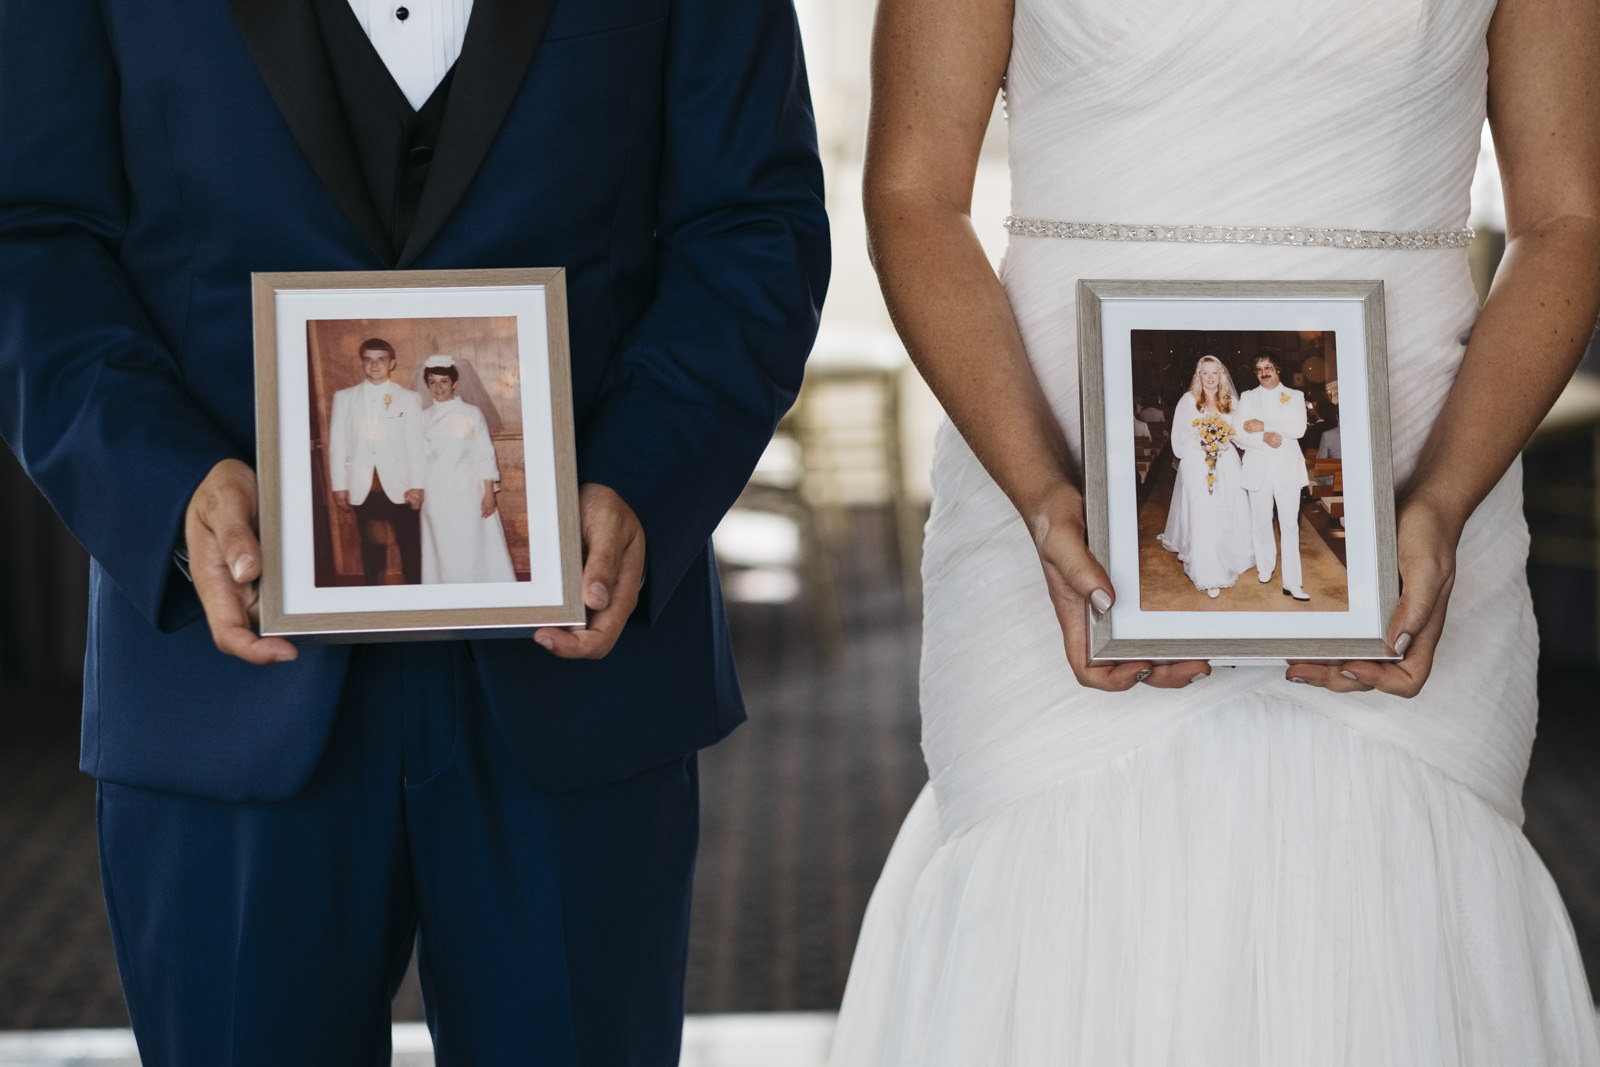 Family members of the bride and groom in picture frames.